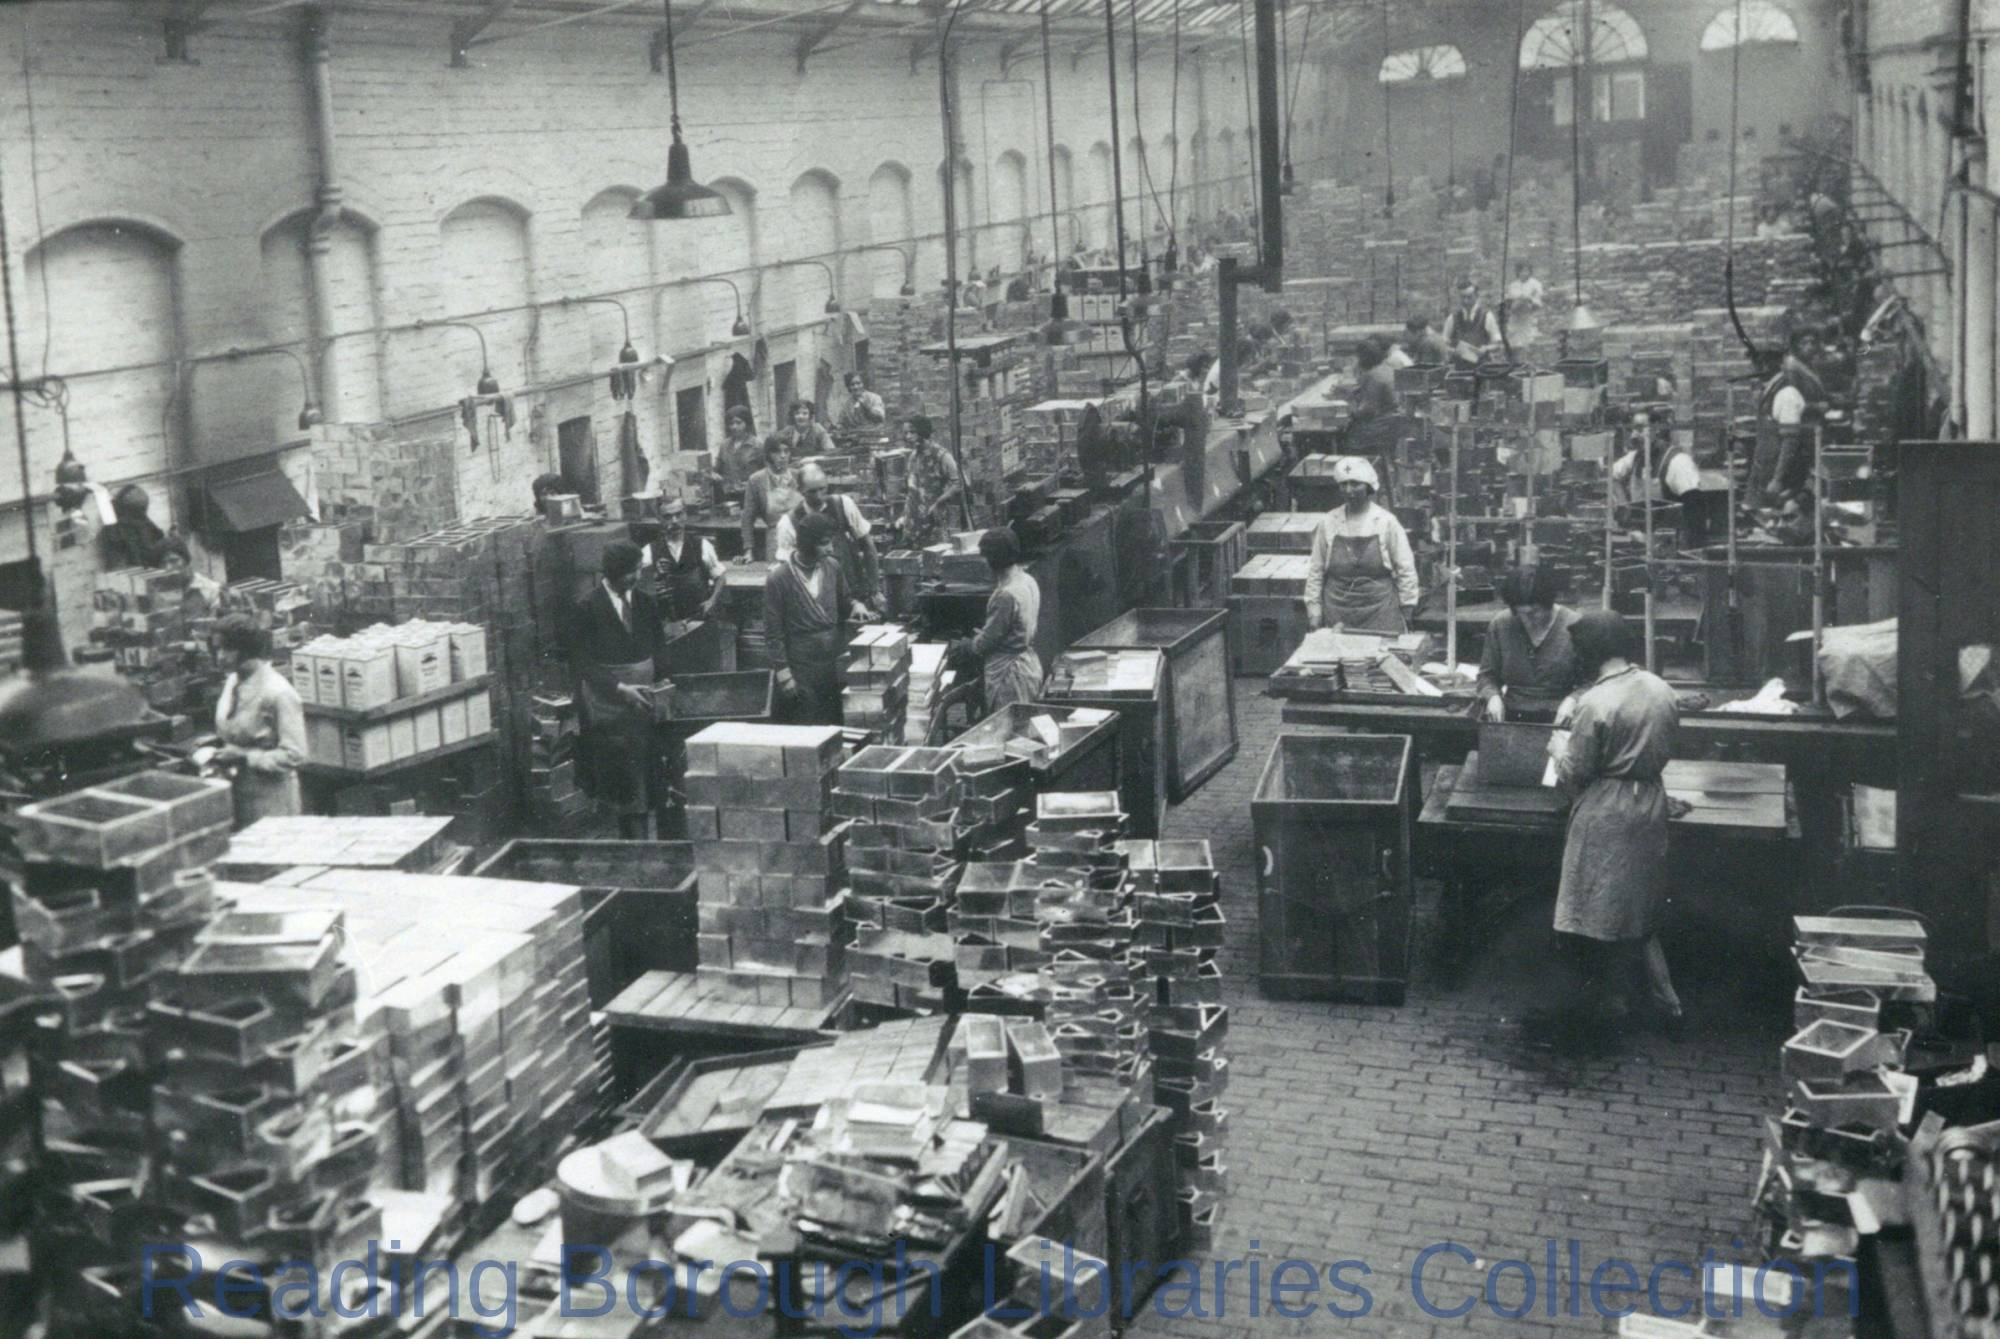 Interior of the Tinplate Factory of Huntley, Boorne and Stevens, at London Street, Reading, c. 1930